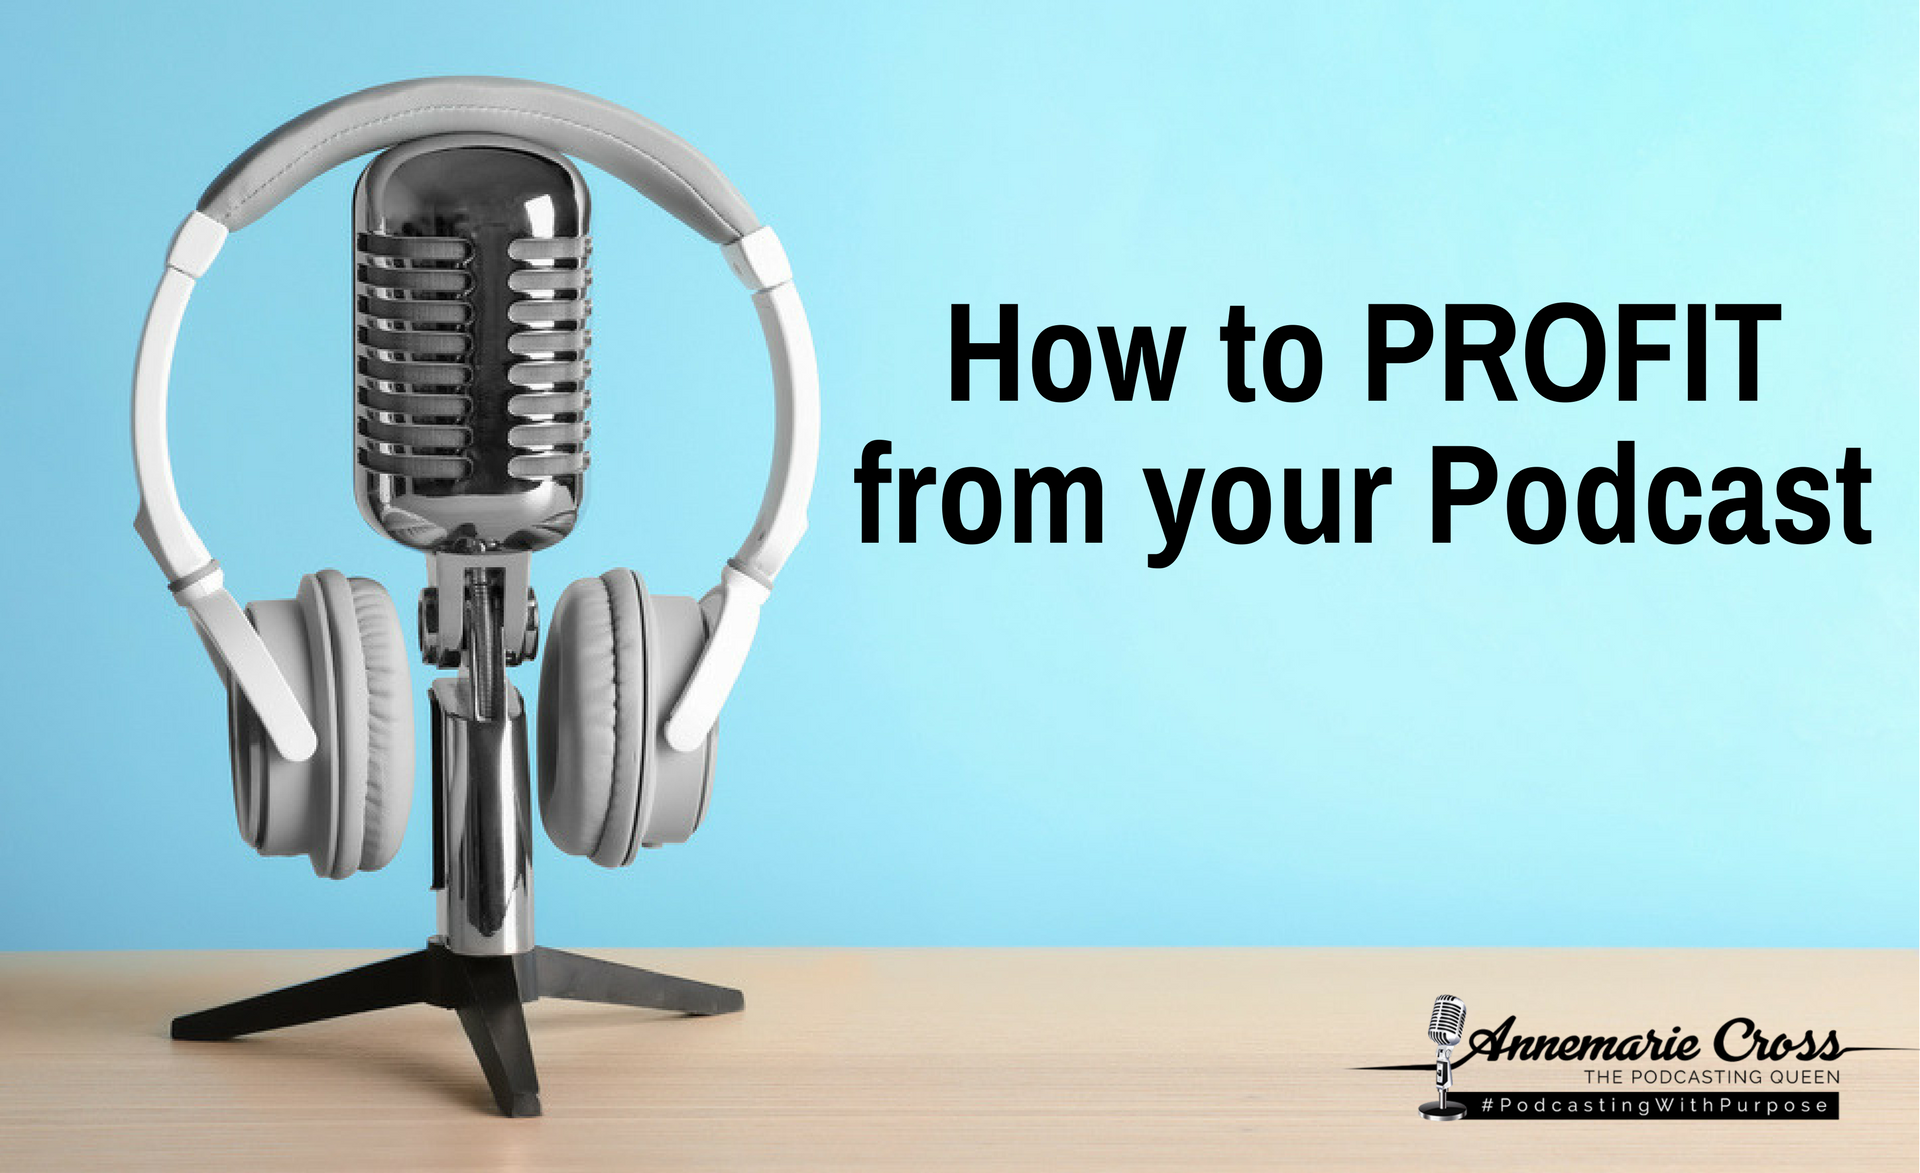 How to Profit from your Podcast